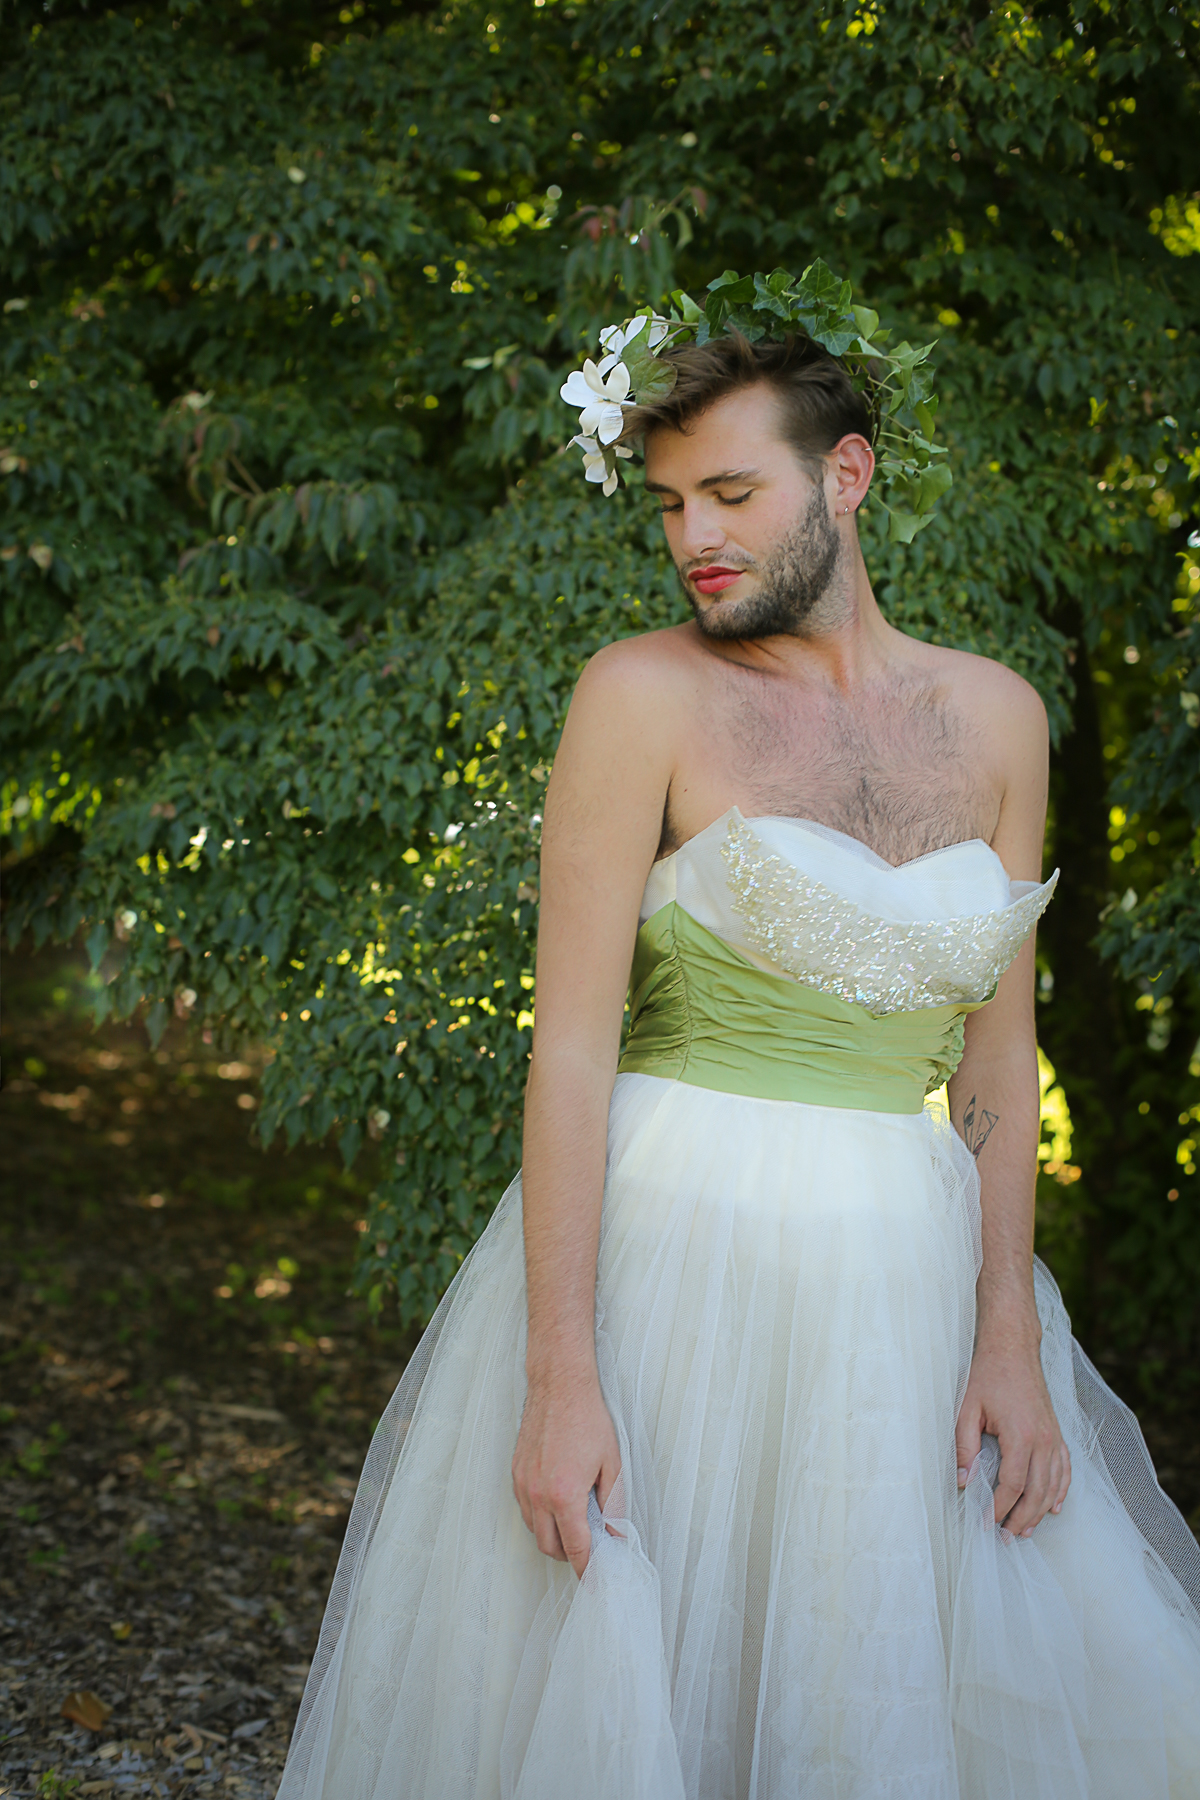 Beautiful man wearing a 1950s prom dress from Bride of the Fox Vintage on Etsy. Creative Portrait Photography by Blacksburg Virginia Photographer Holly Cromer.